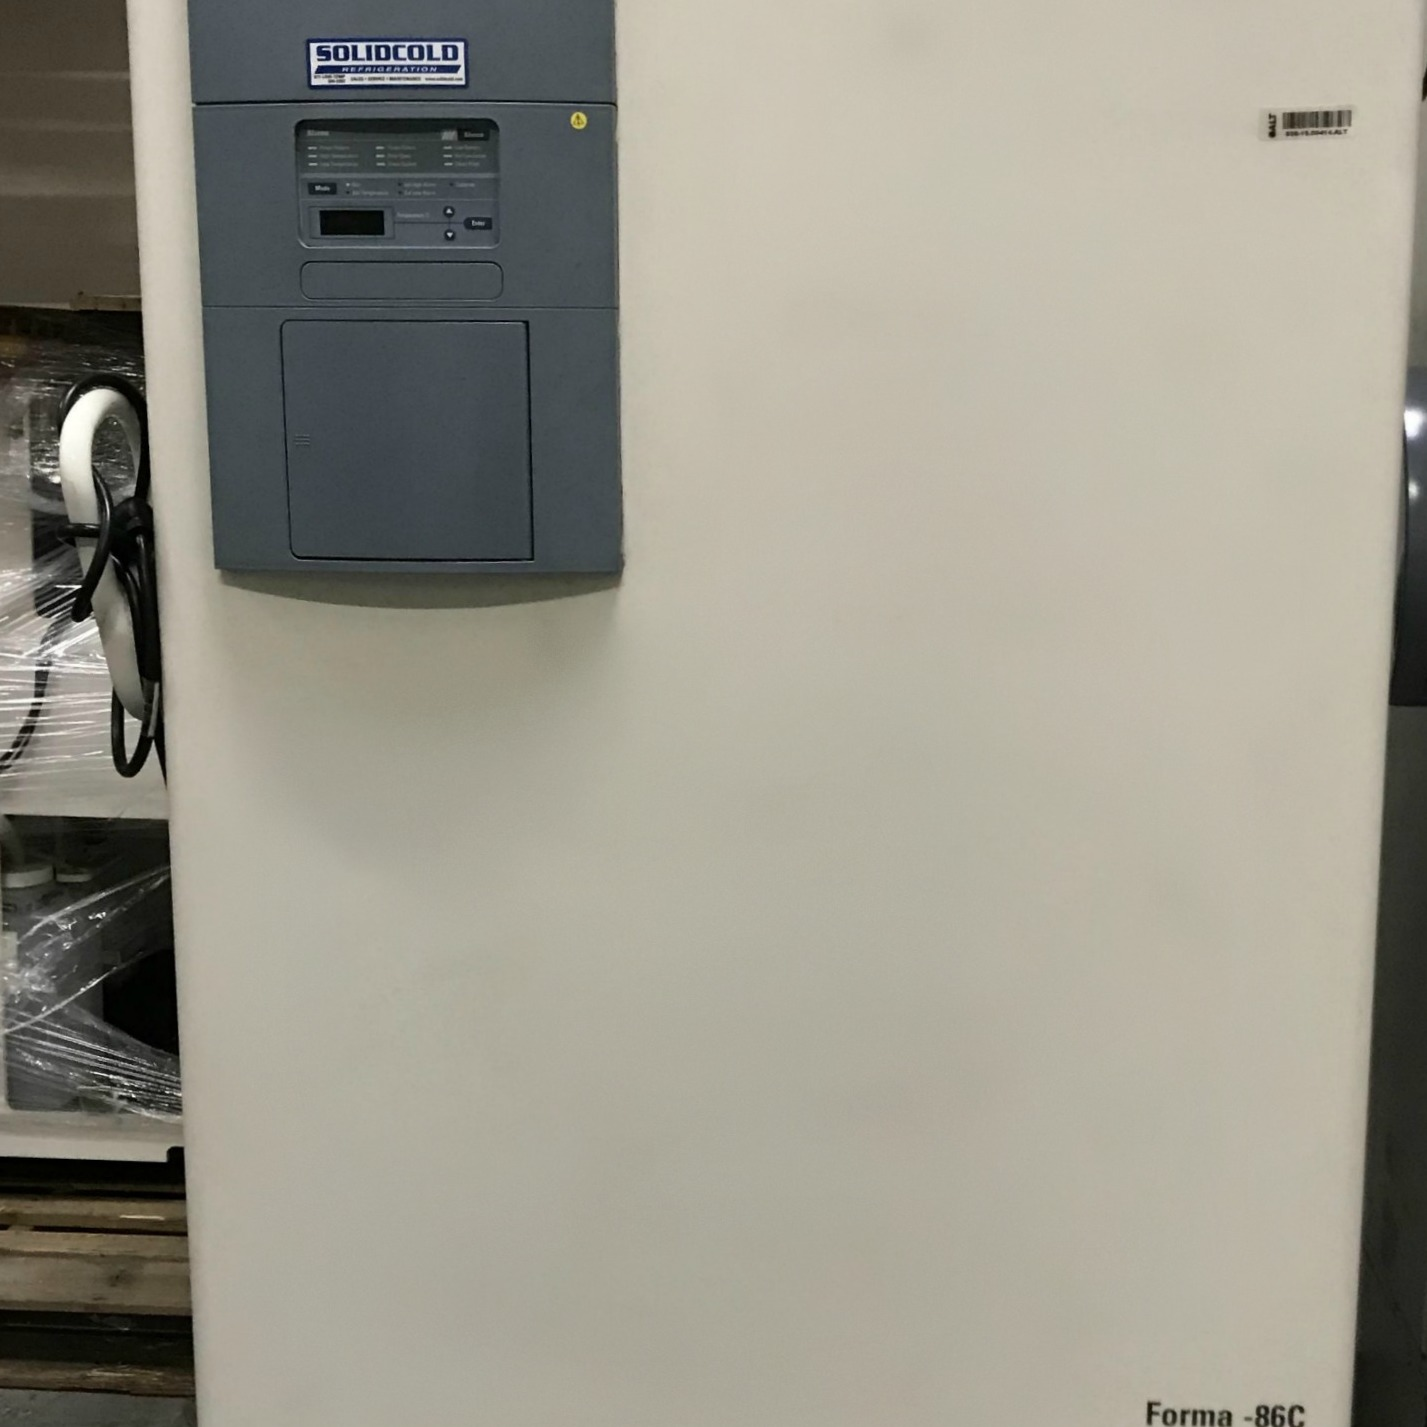 Thermo Electron Corporation Forma -86C ULT Freezer Model 906 Image